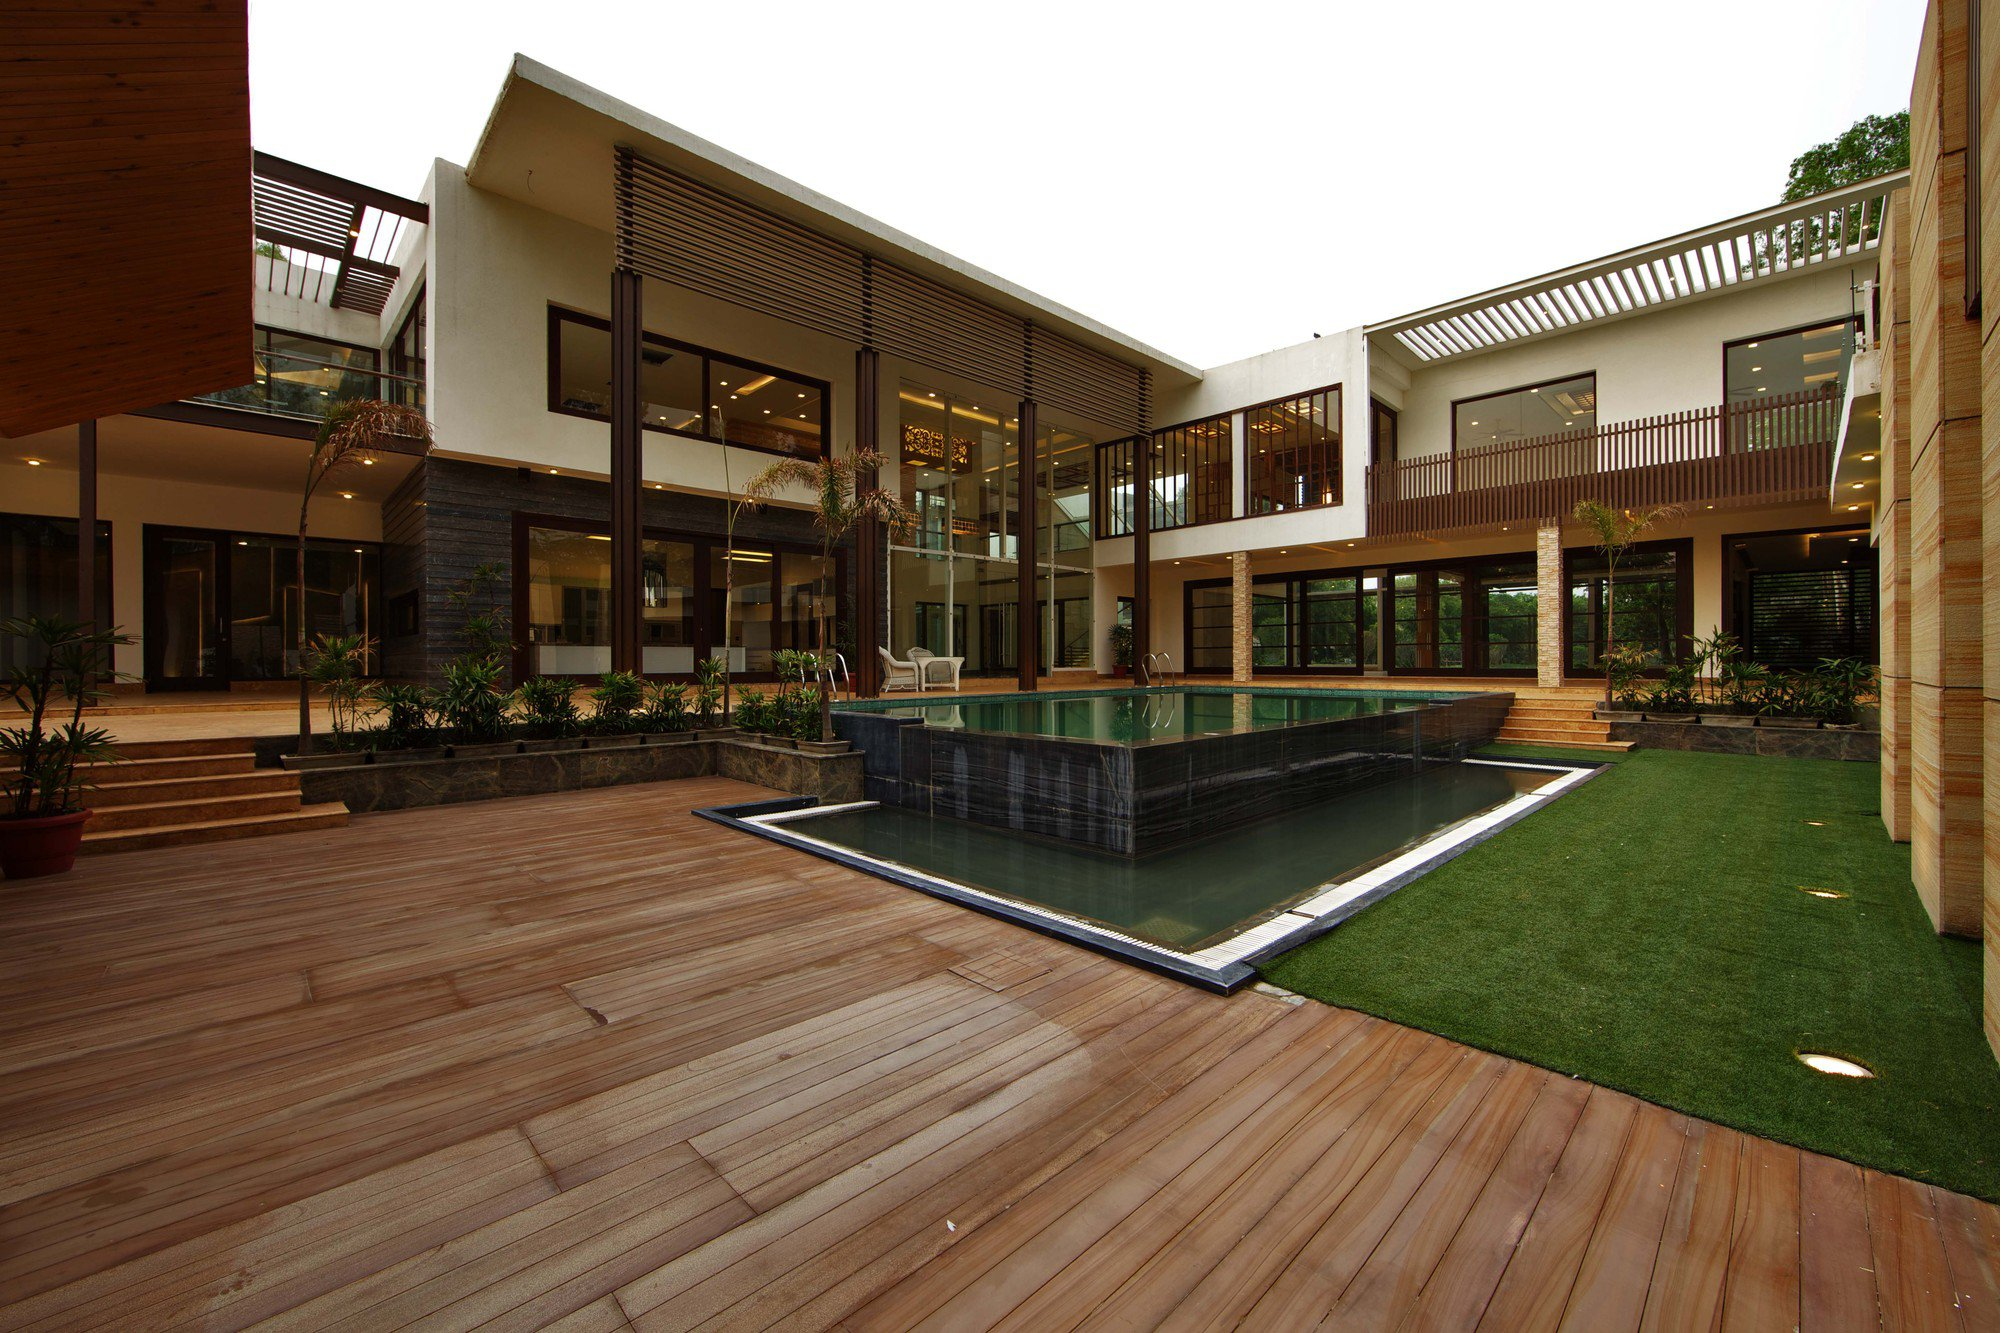 Sachdeva farmhouse in new delhi india for Architecture design for home in delhi